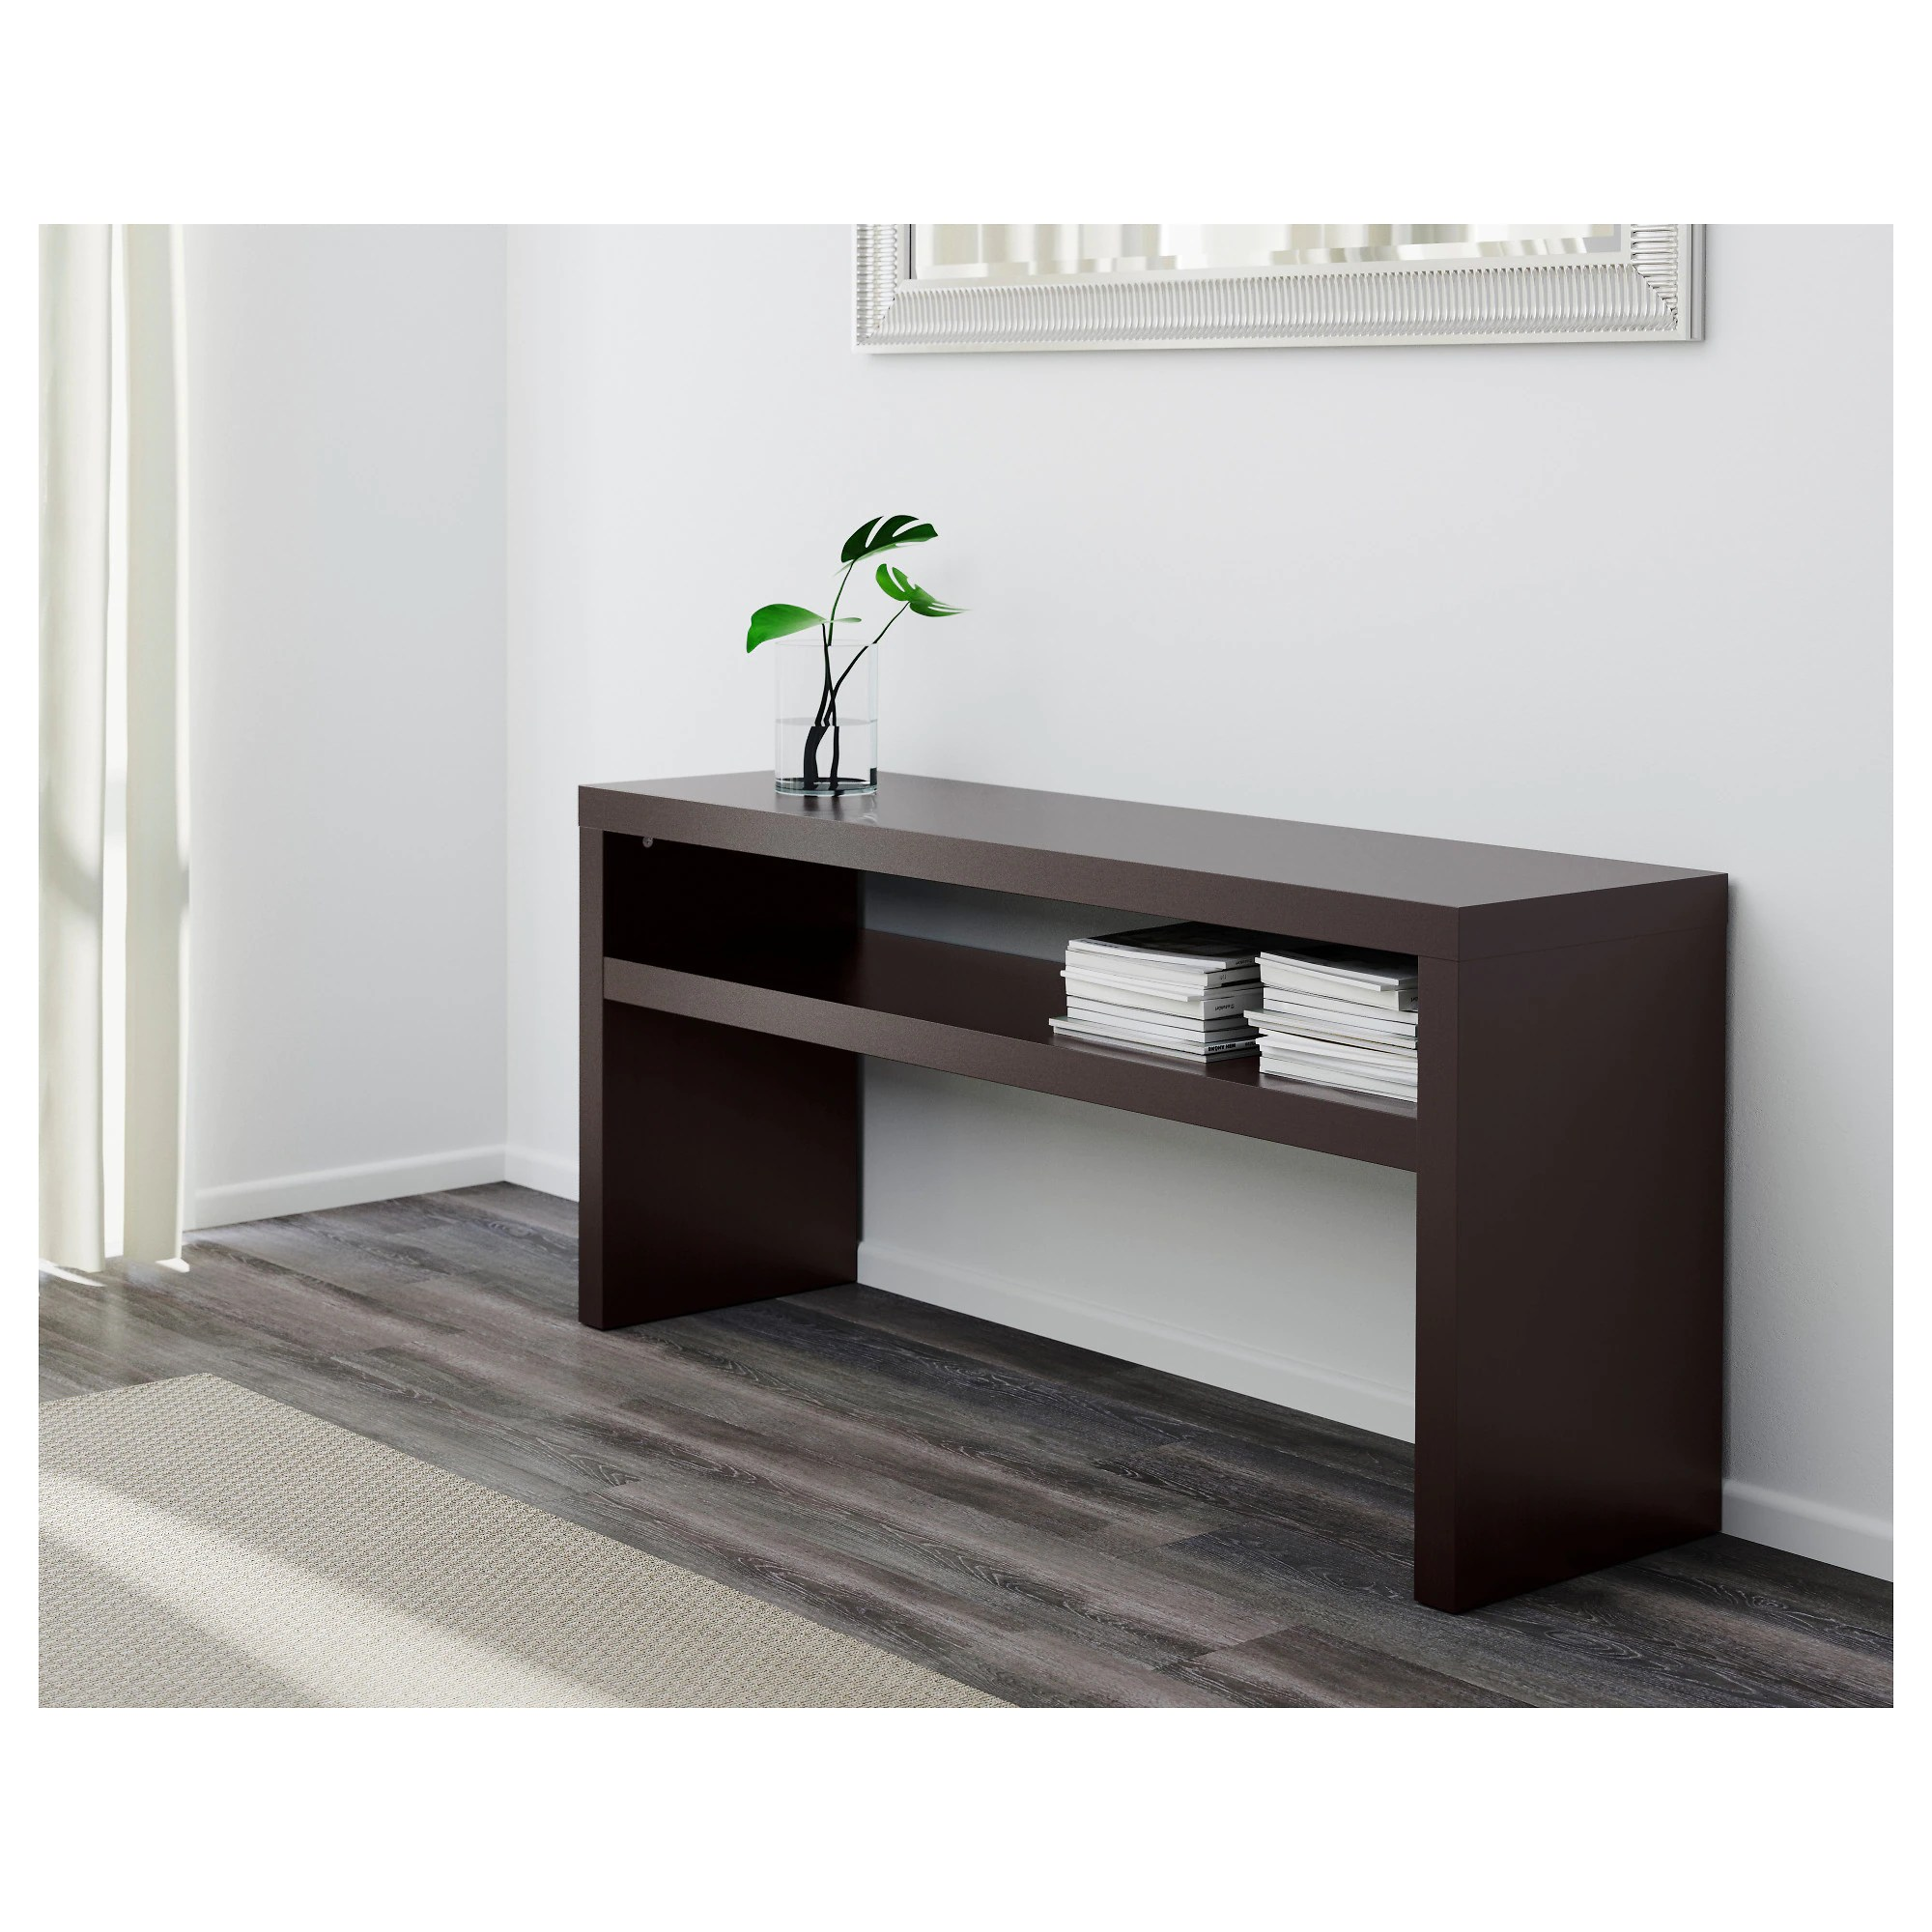 lack sofa table as desk bed support white console tables use hemnes